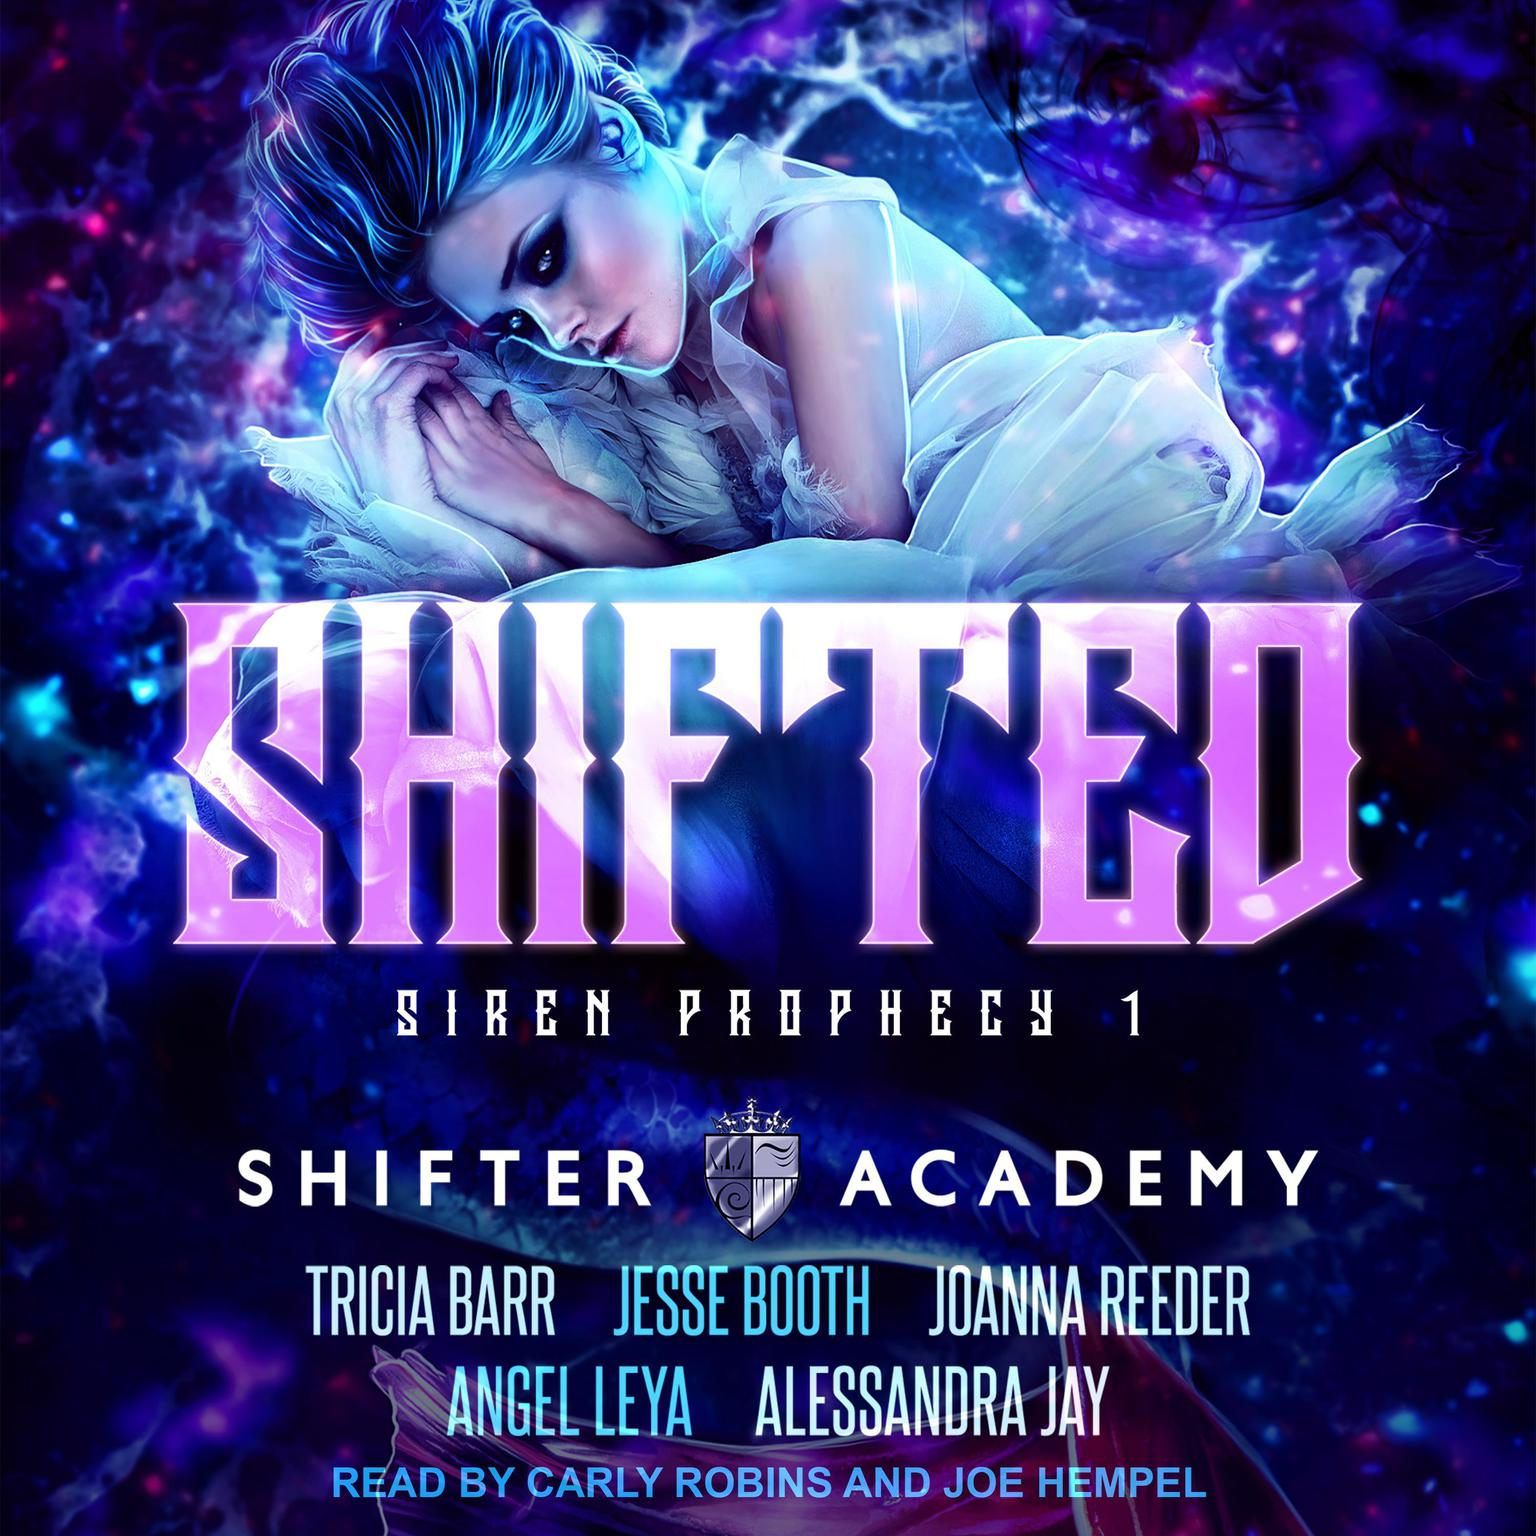 Printable Shifted: Siren Prophecy 1 Audiobook Cover Art